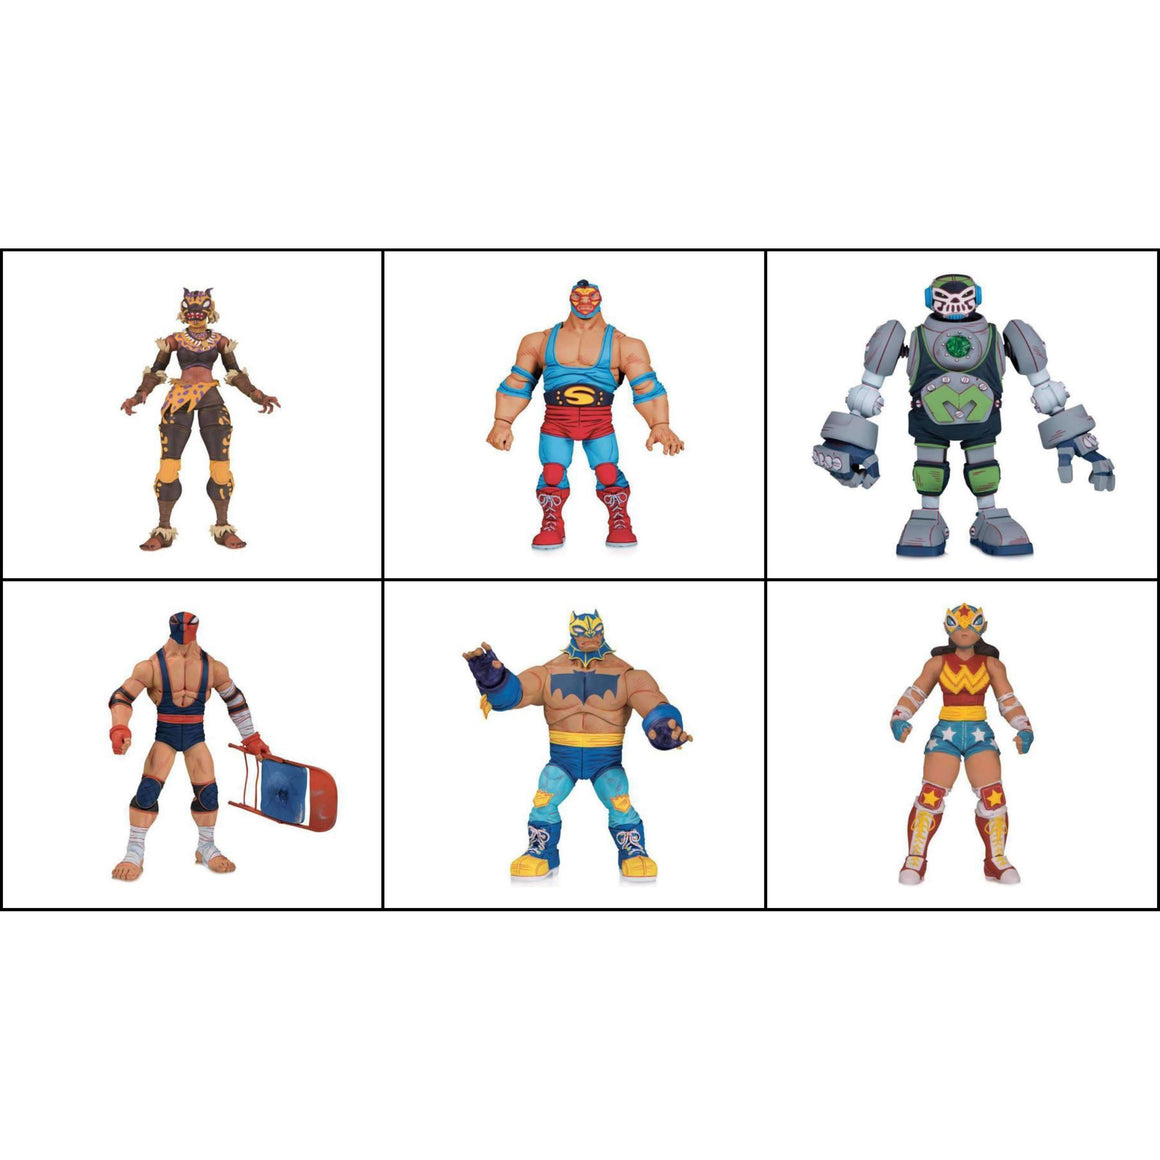 DC ¡Lucha Explosiva! Complete Set of 6 Figures - OCTOBER 2019